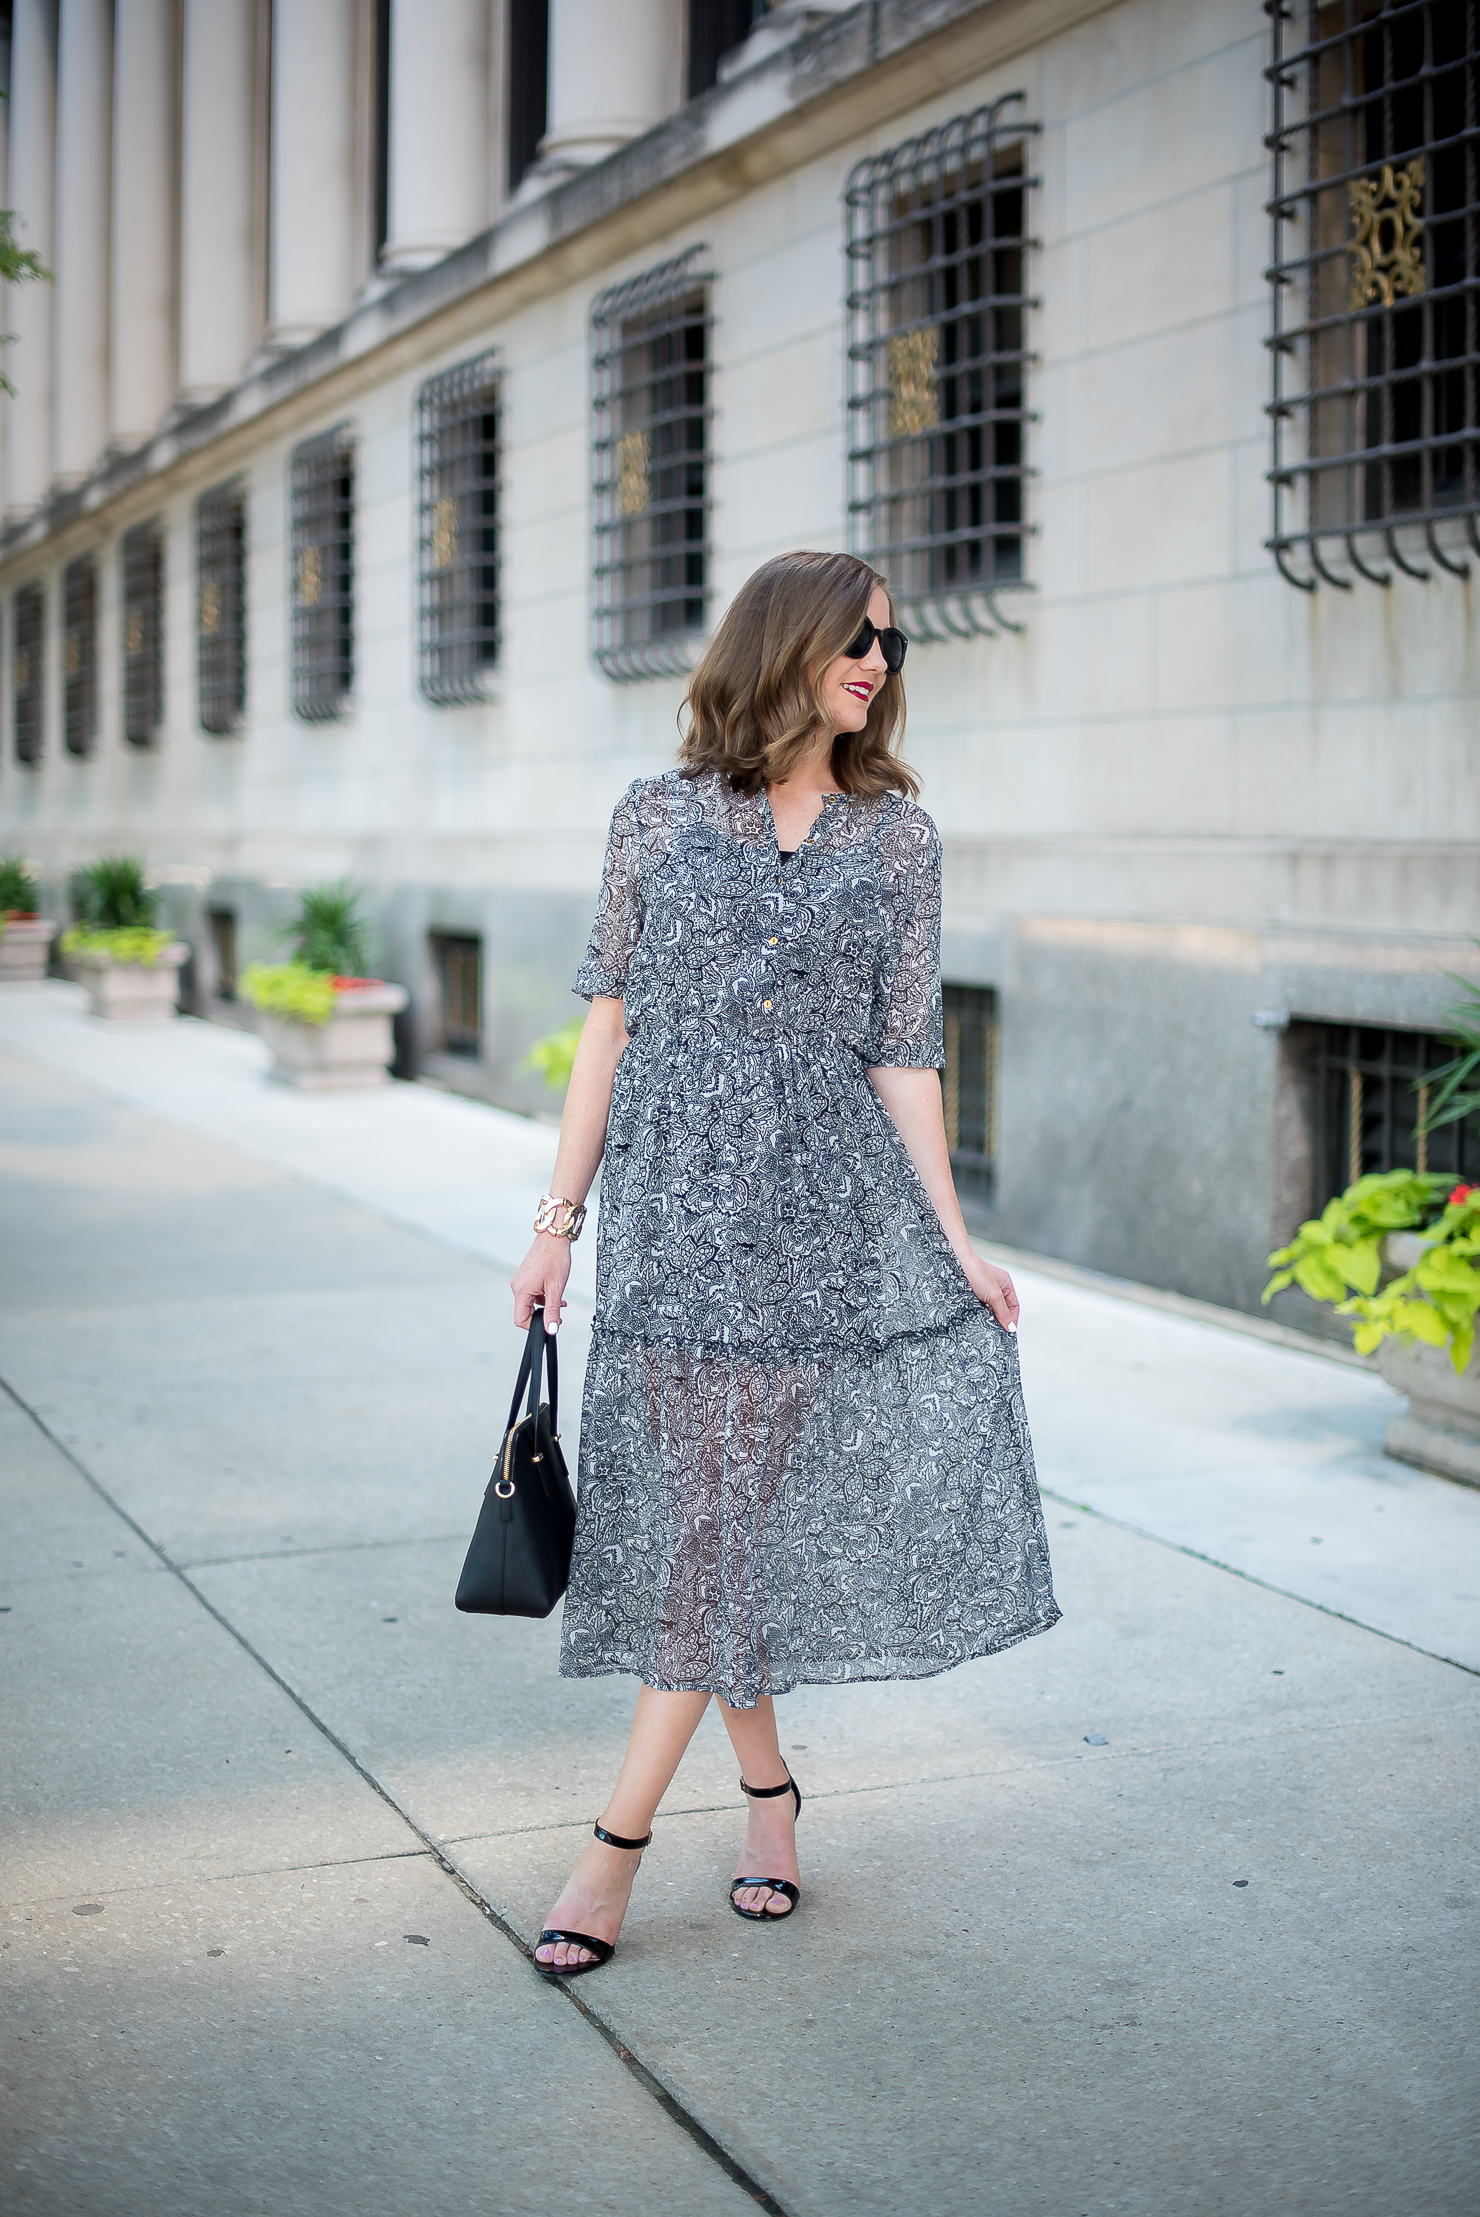 target-who-what-wear-printed-midi-dress-classic-feminine-ladylike-kate-spade-cedar-maise-gold-details-chicago-drake-hotel-4